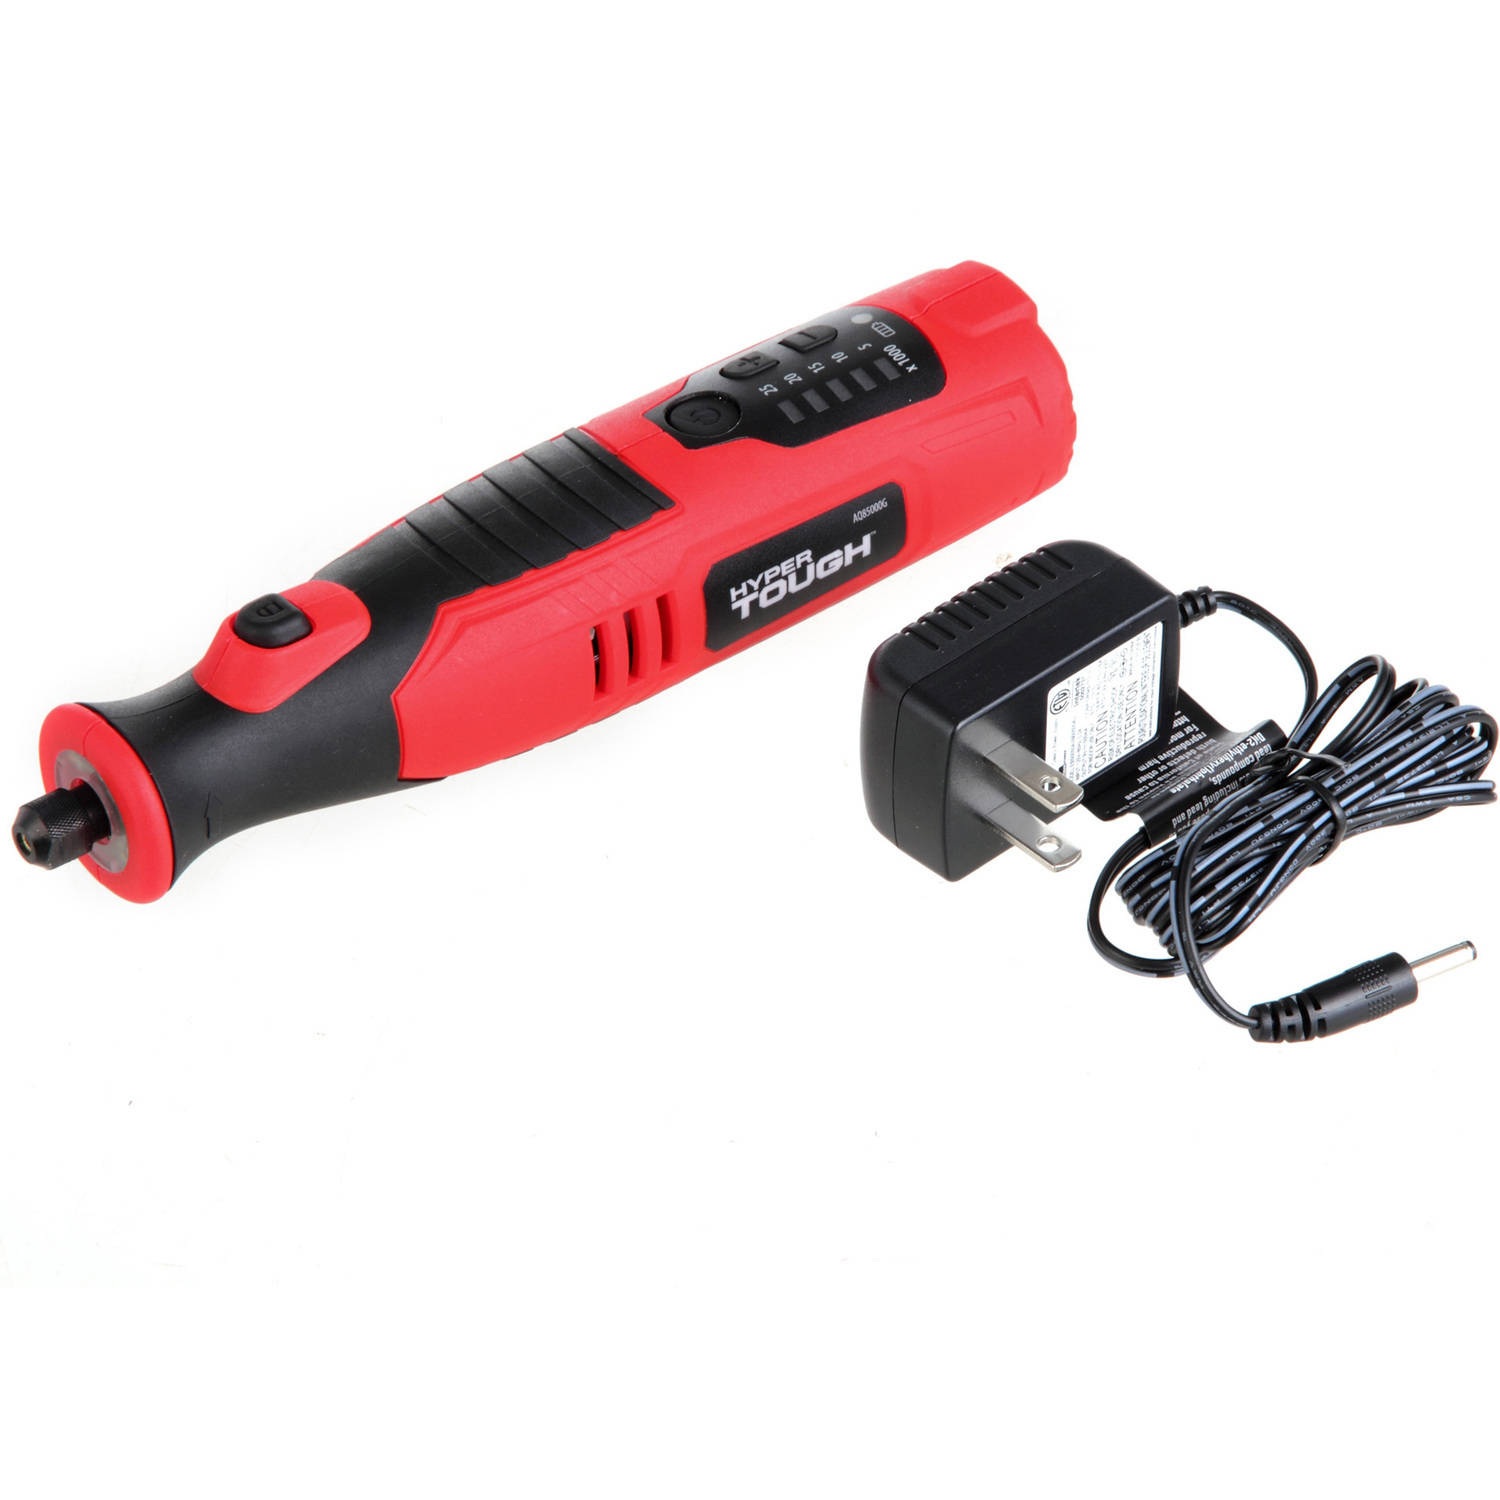 Hyper Tough AQ85000G 8-Volt Lithium-Ion Rotary Tool with 40 Accessories